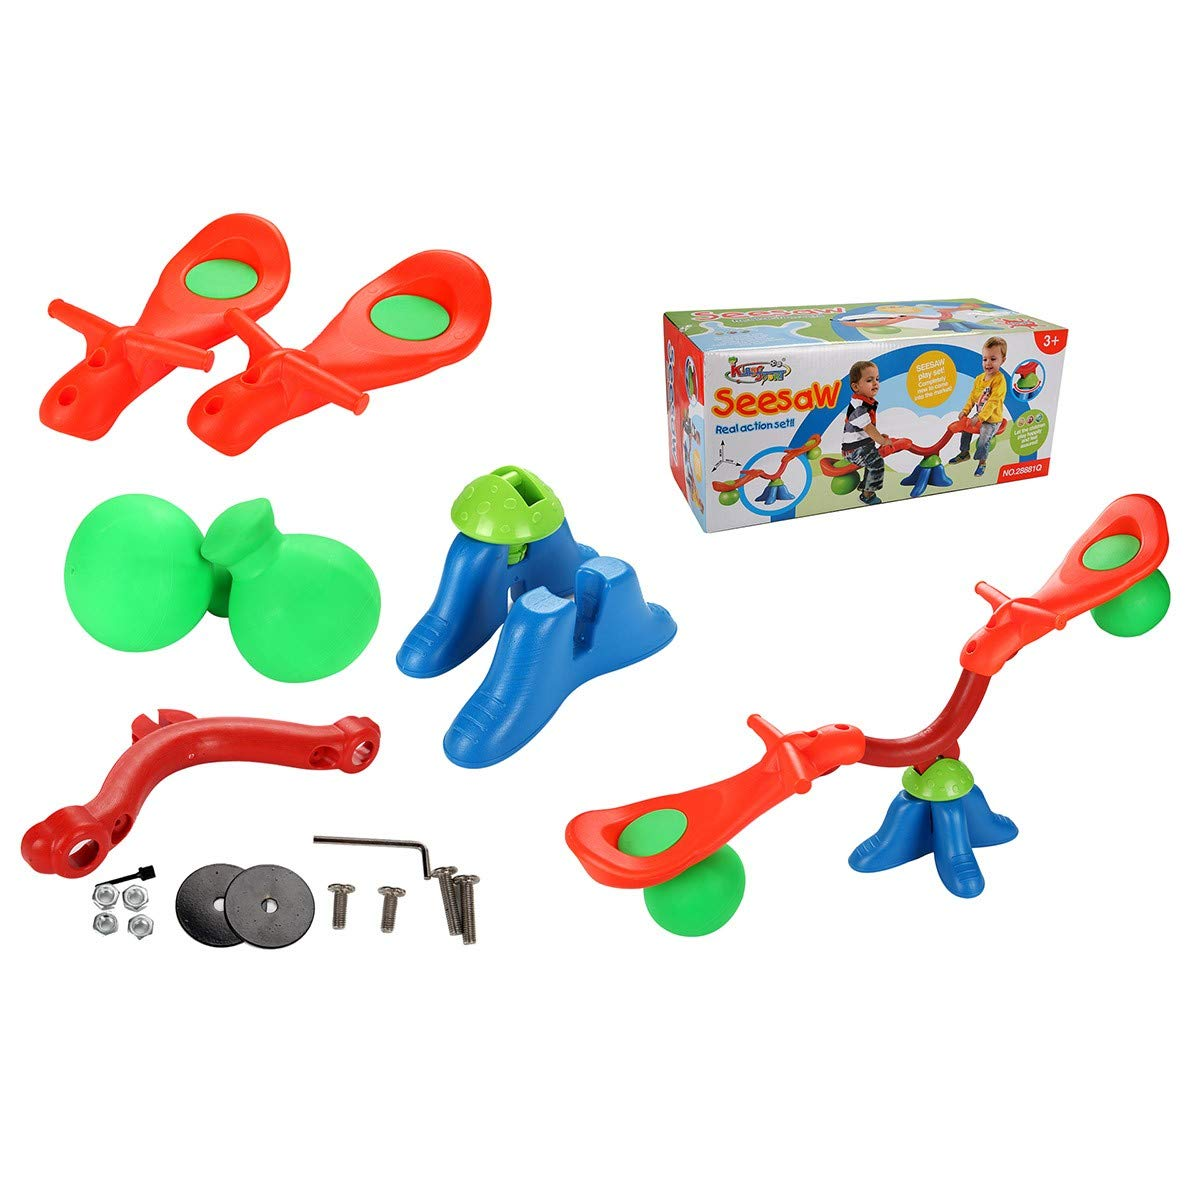 Kids Seesaw 360 Degree Spinning Teeter Totter Bouncer Bright and Cheerful Color Easy-Grip Handles by EnjoyShop (Image #6)